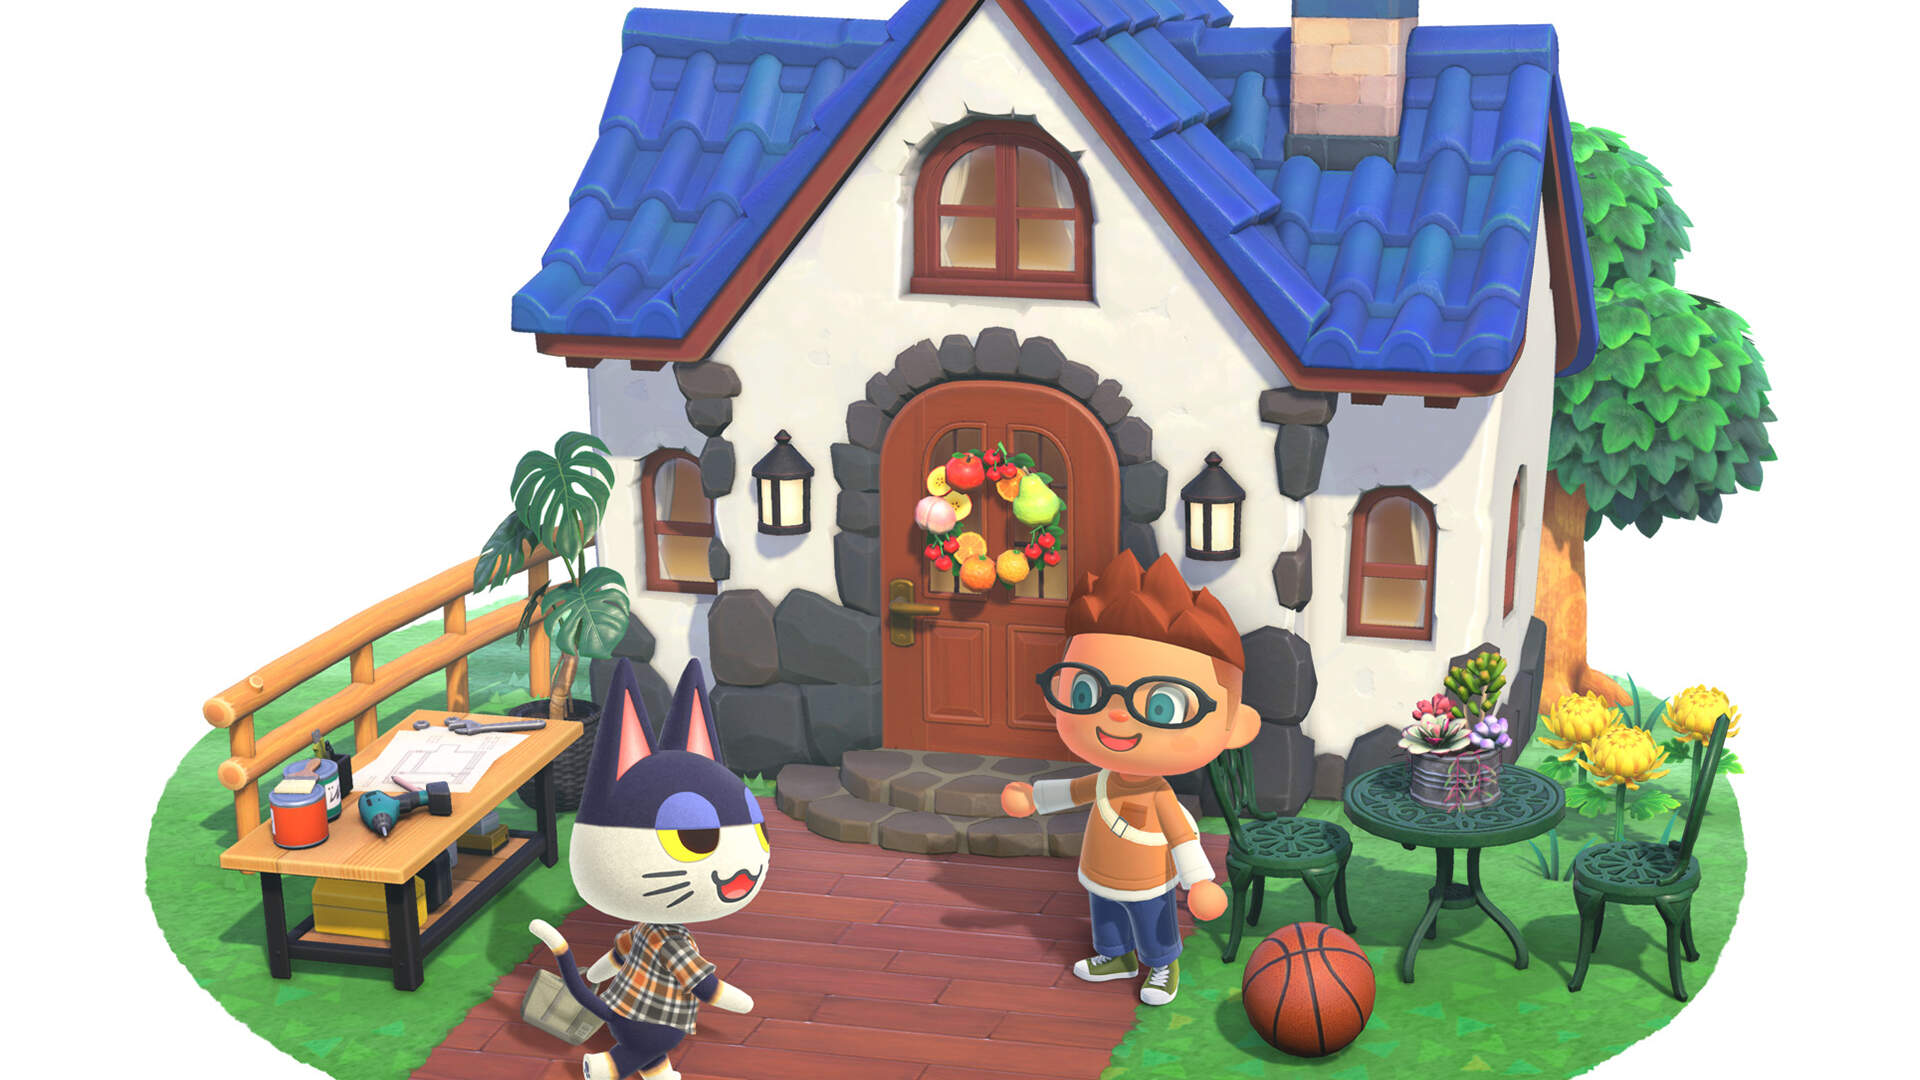 Someone's Recreated Hyrule in Animal Crossing: New Horizons